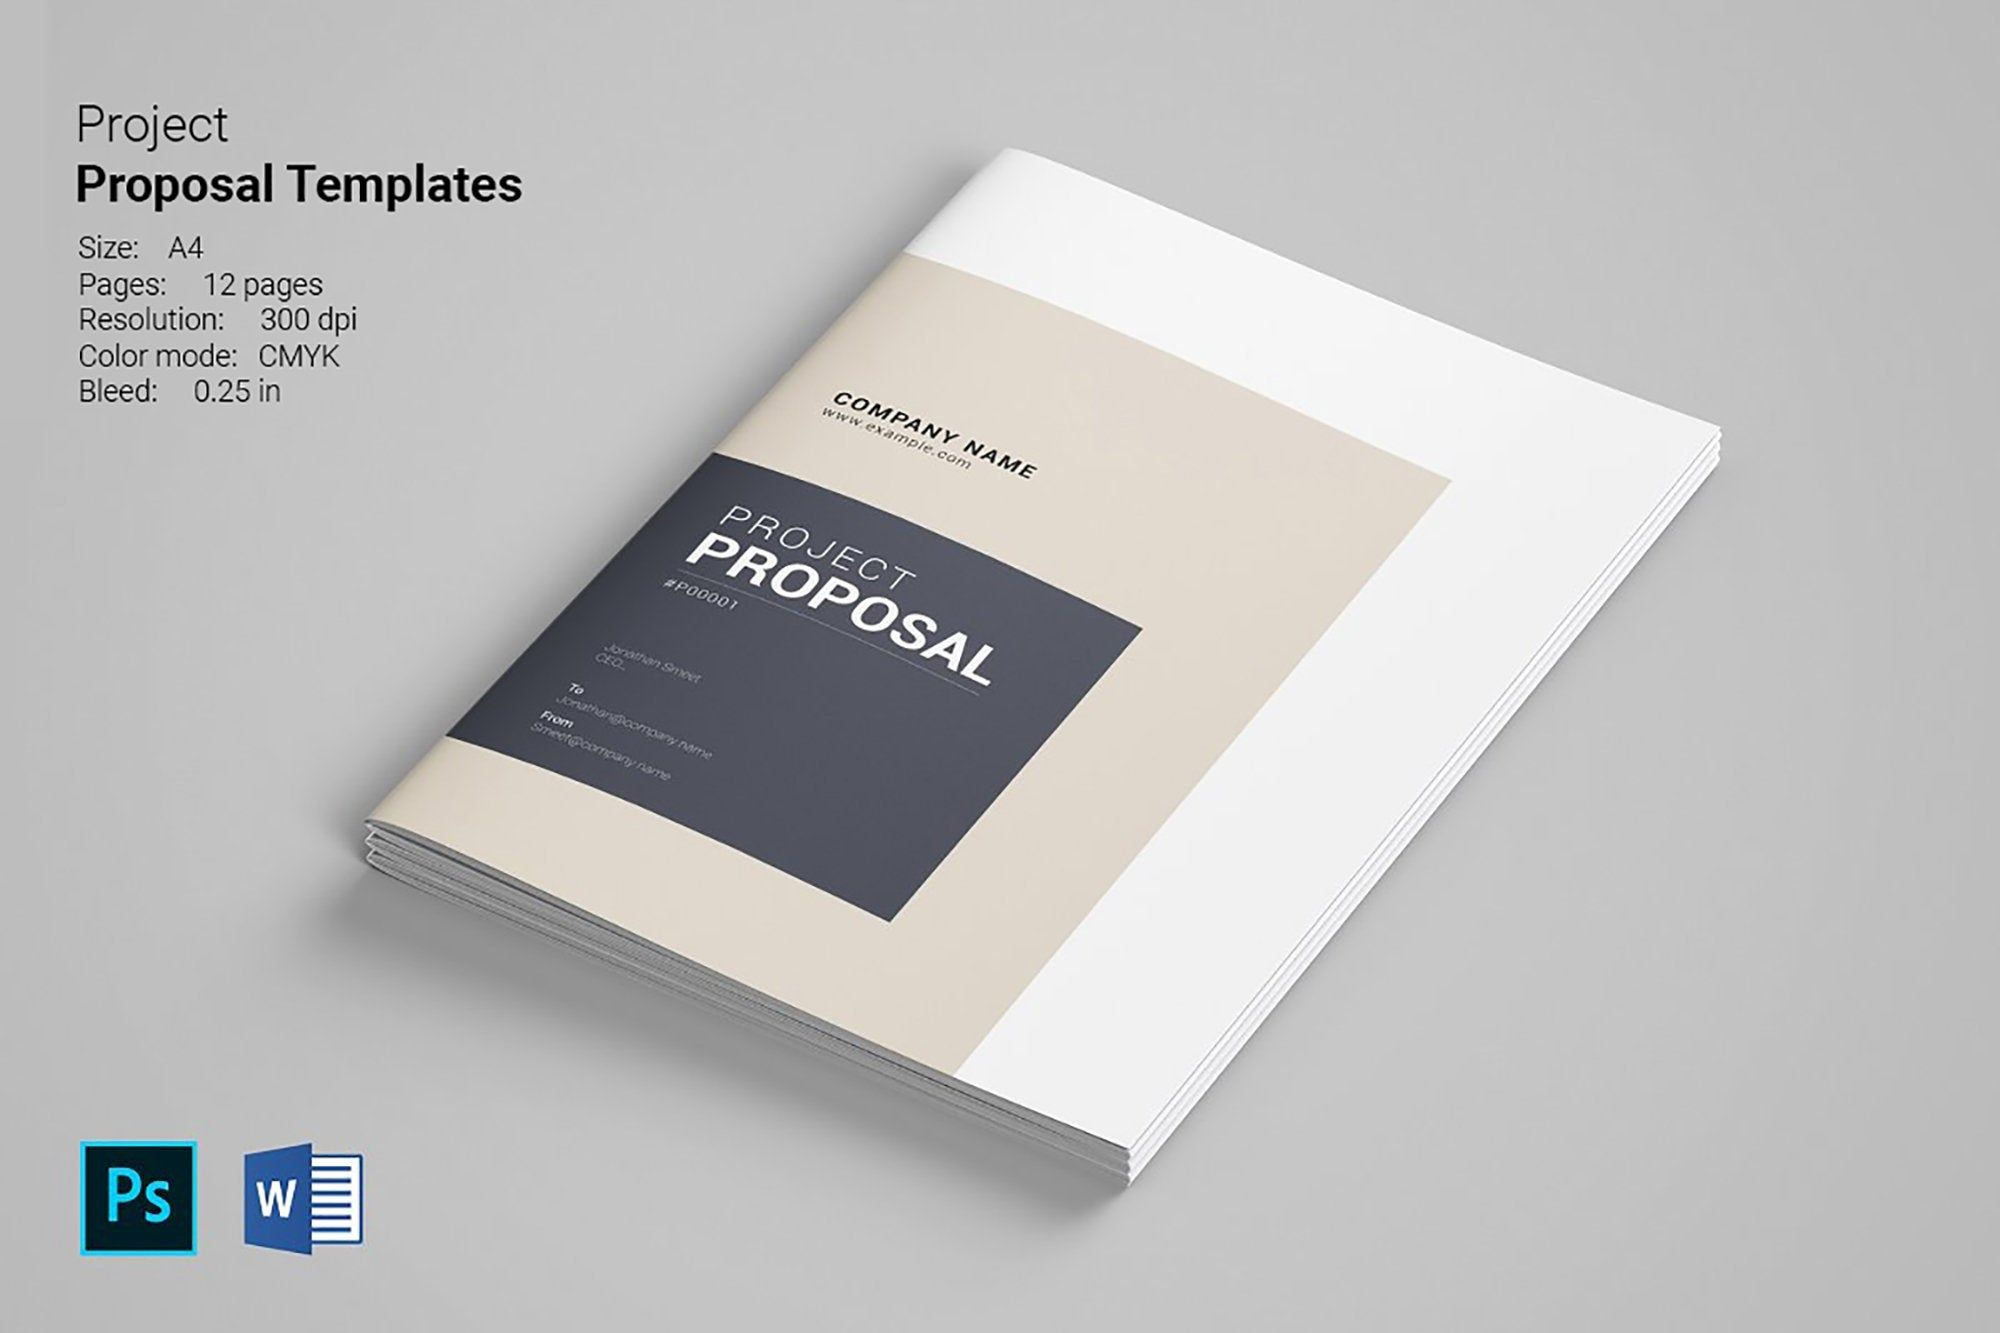 Business Proposal Print Template Photoshop Ms Word Etsy In 2021 Proposal Templates Brochure Design Template Brochure Template - ms word proposal template